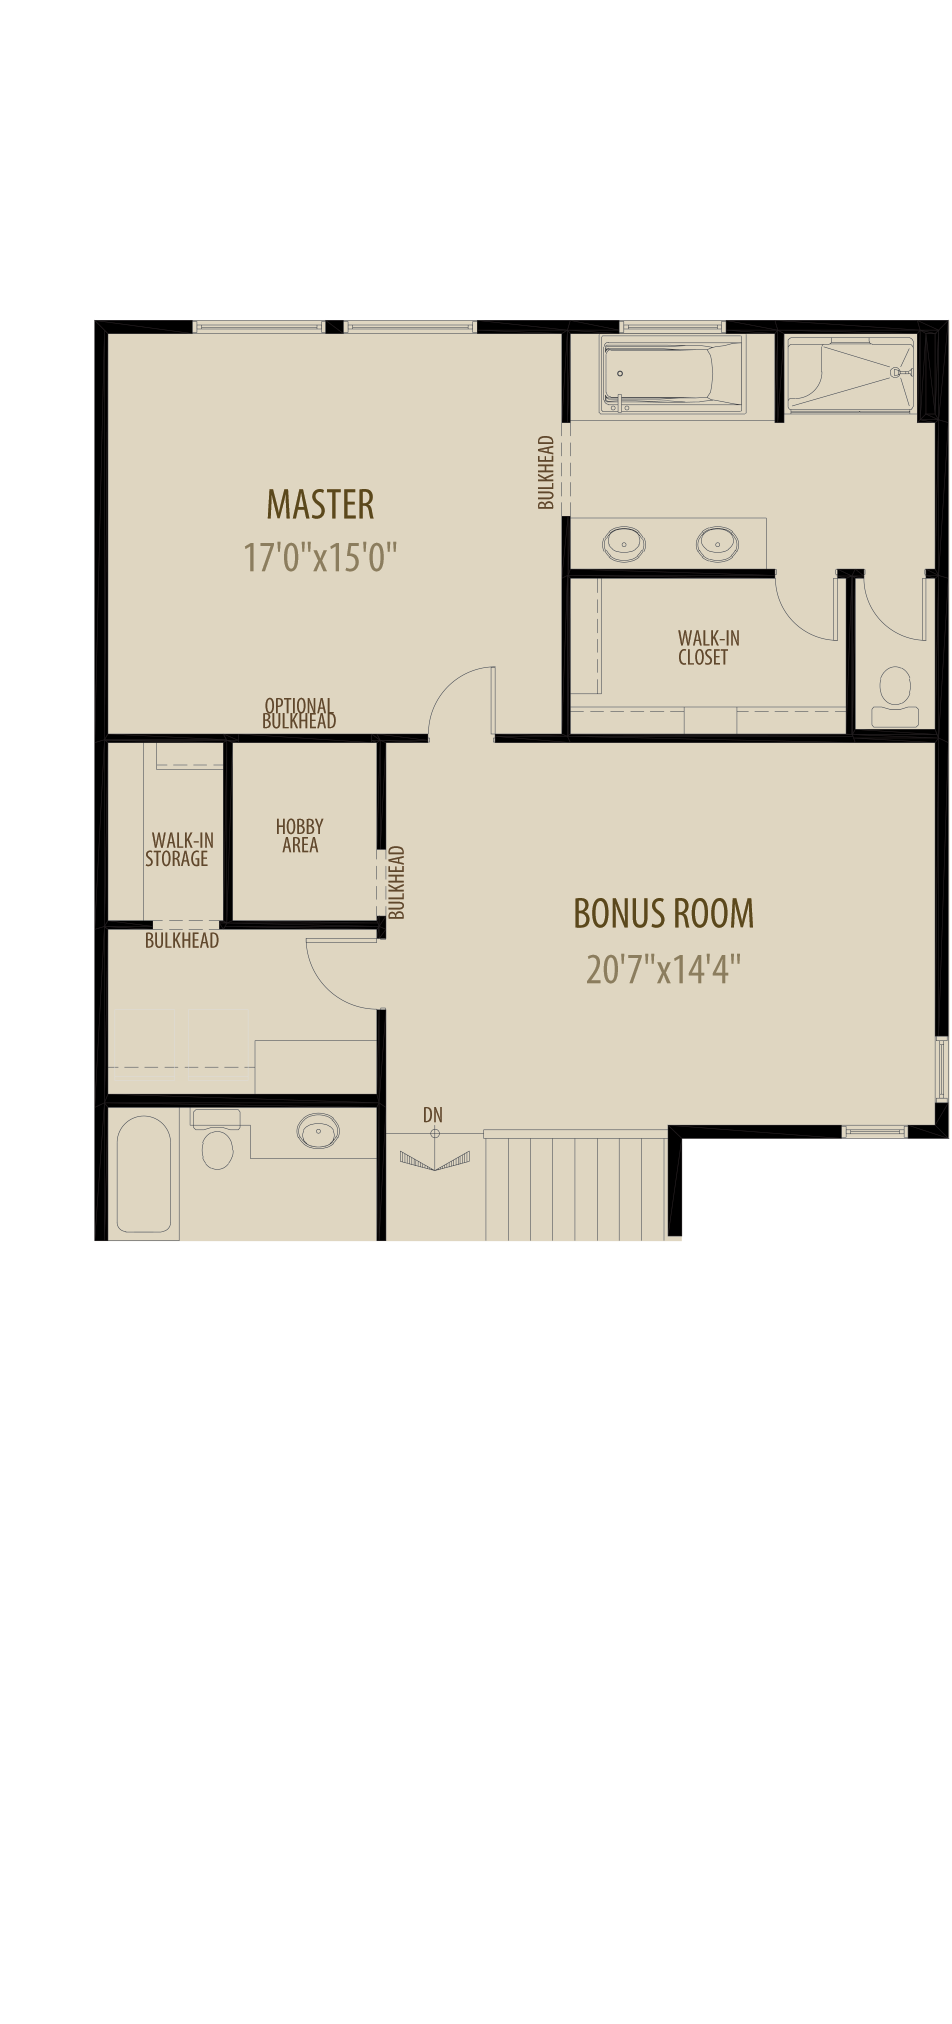 Option 5 Centre Bonus Room W  Hobby Room